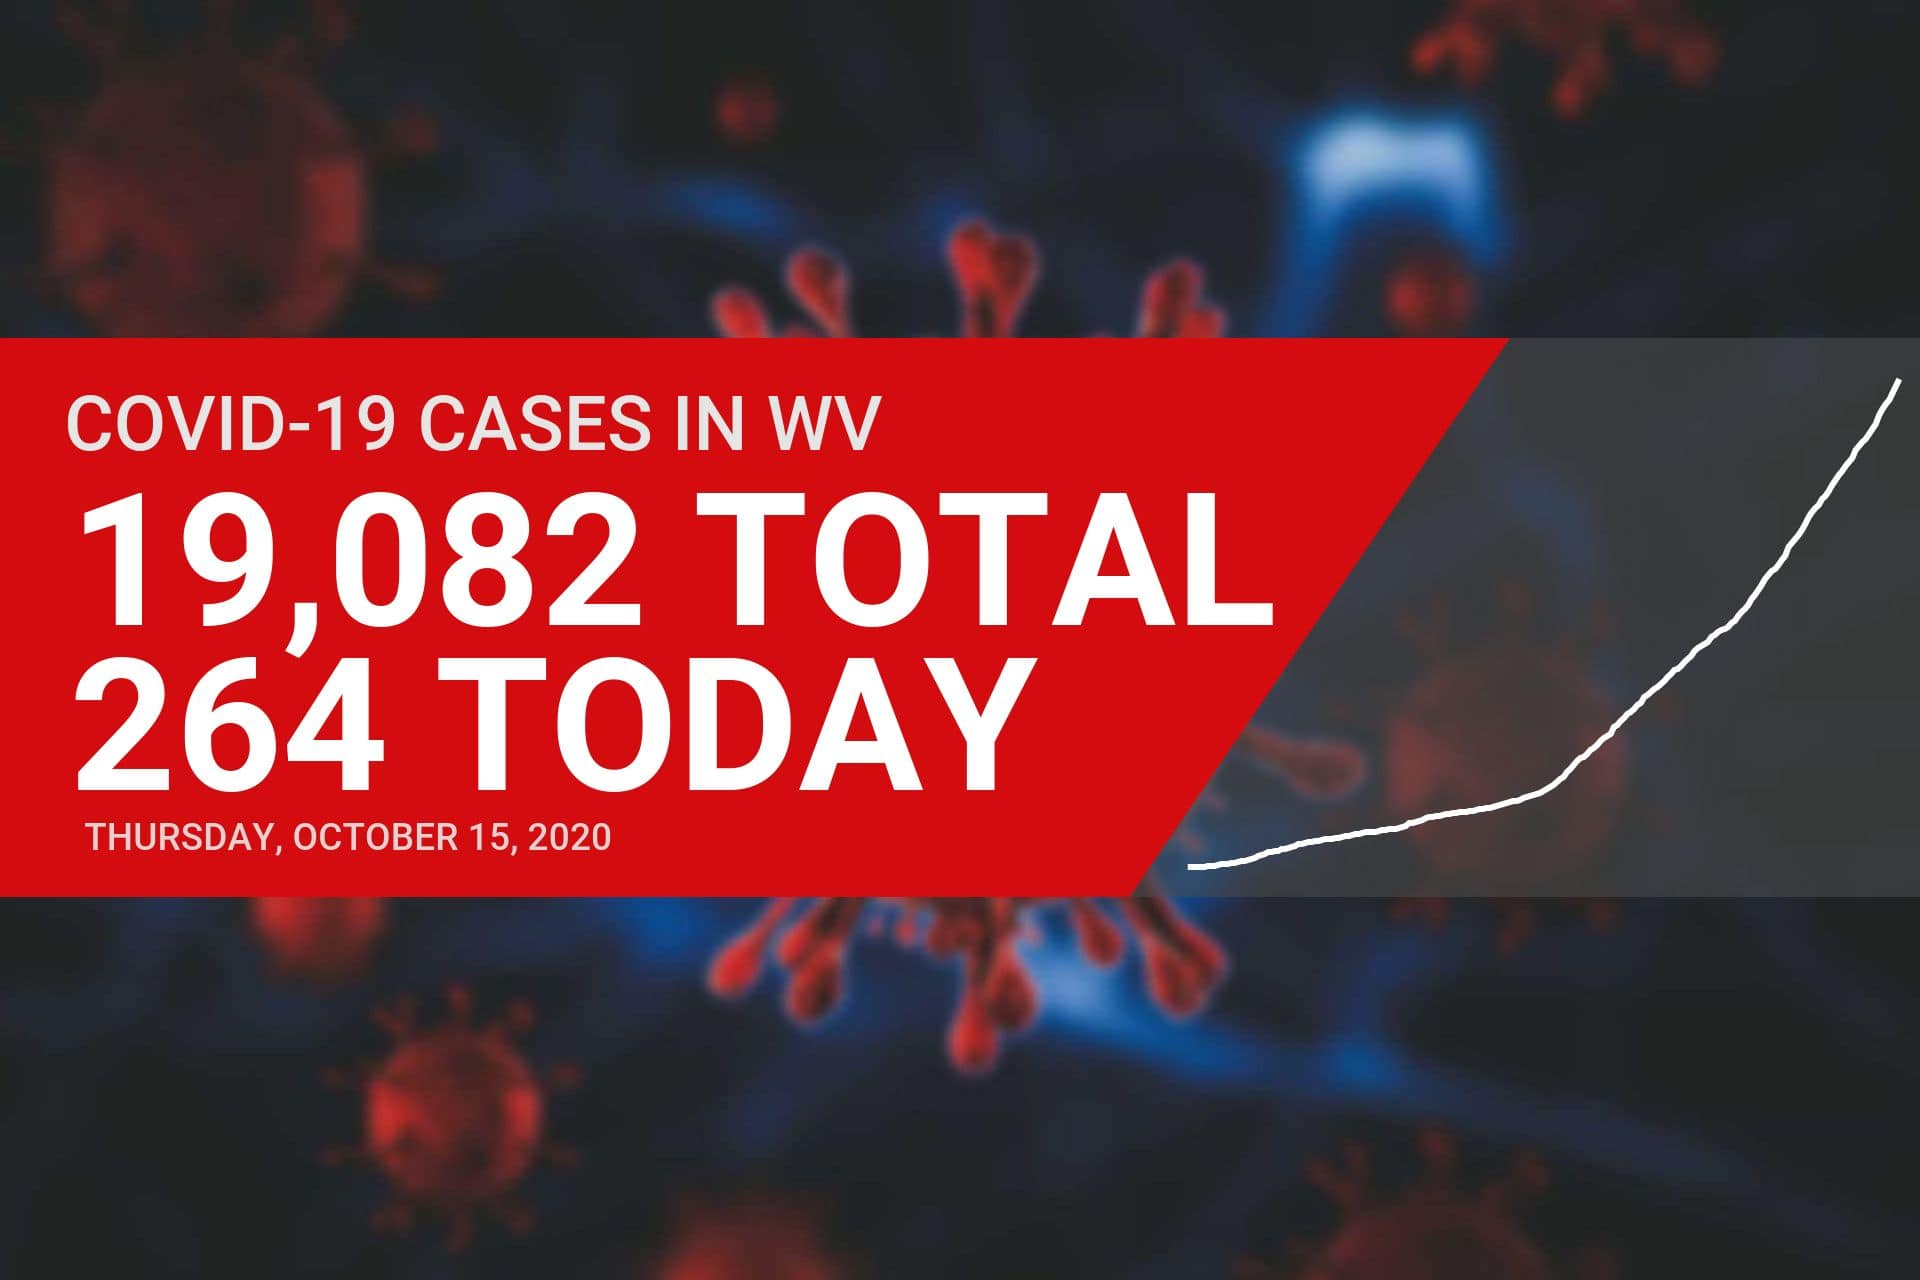 Upshur County reports 12 new COVID-19 cases on Thursday